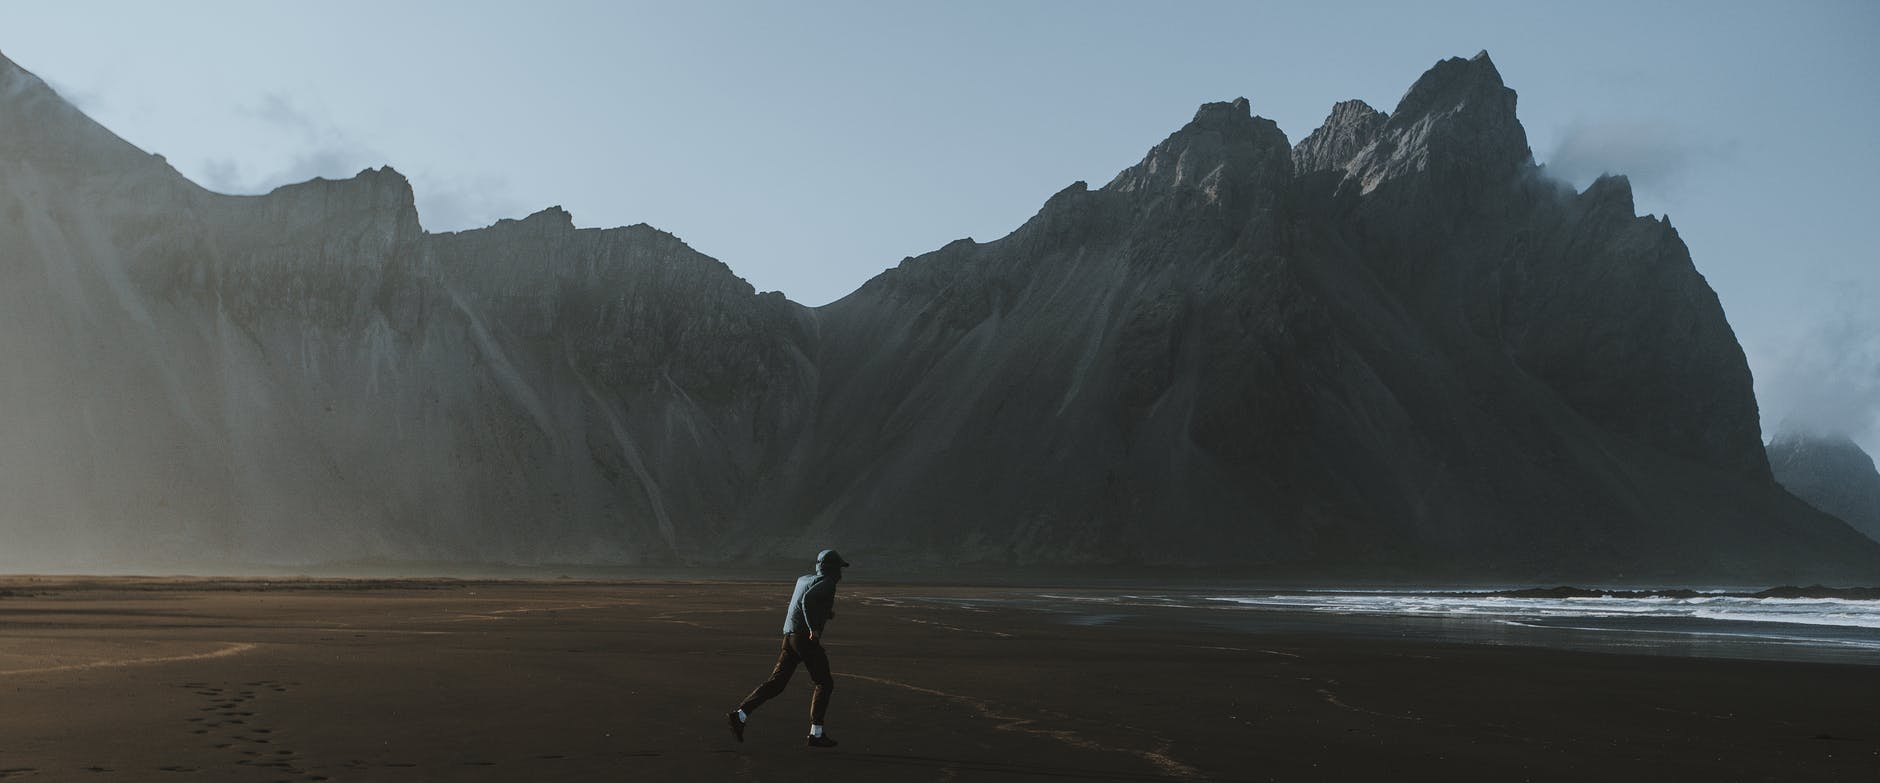 unrecognizable traveler walking on sandy coast near mountains